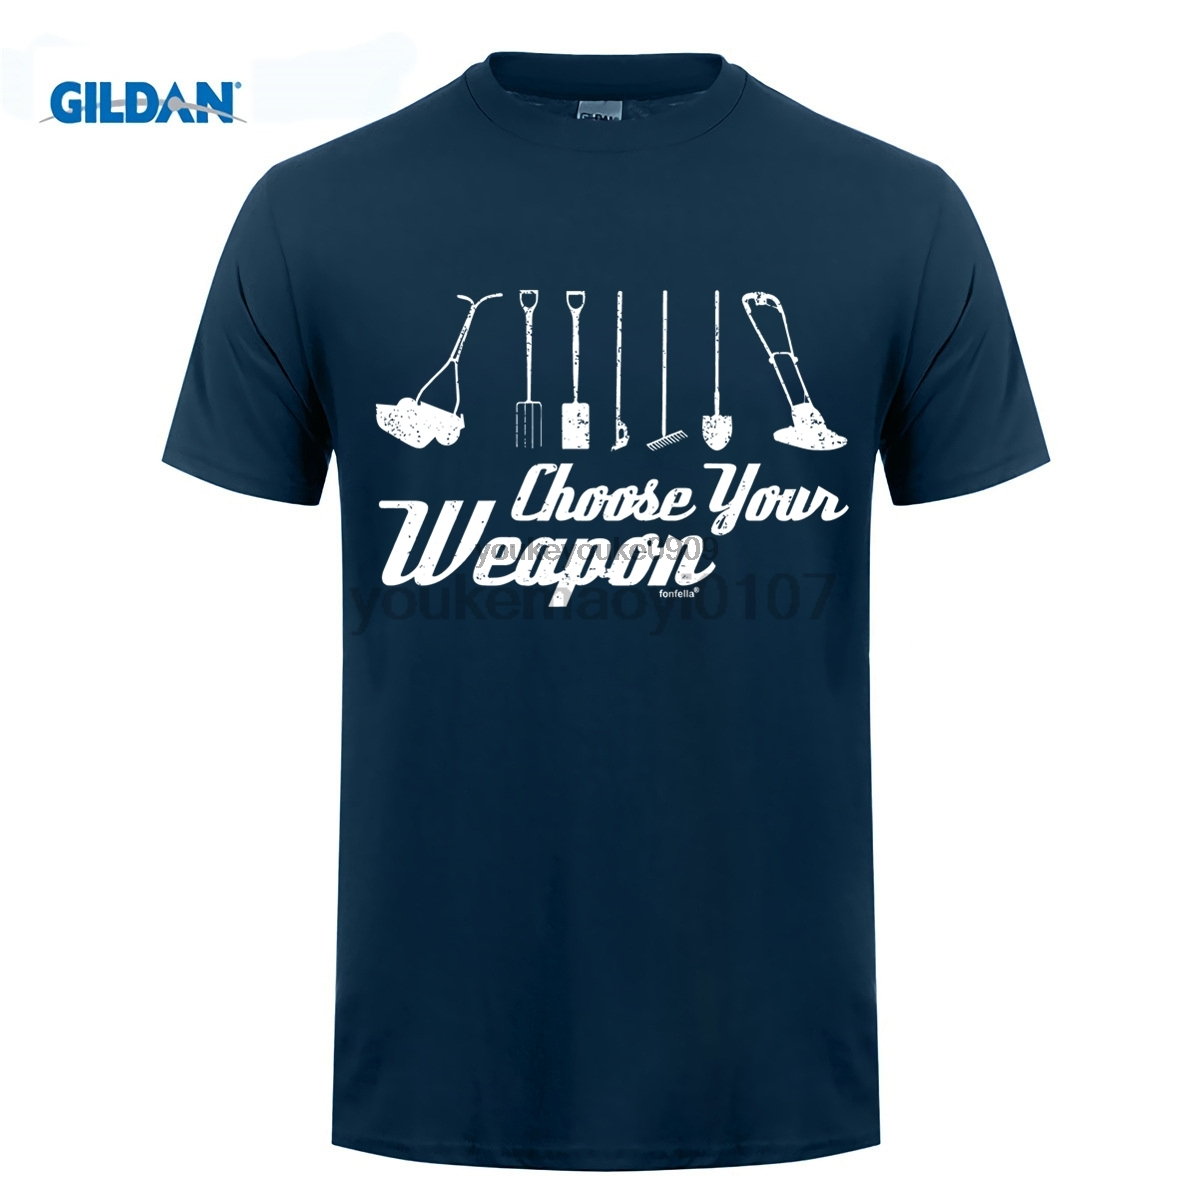 GILDAN Choose Your Weapon Gardner T-SHIRT Garden Tools Lawn Mower Funny Birthday Gift Summer Short Sleeves T Shirt Fashion